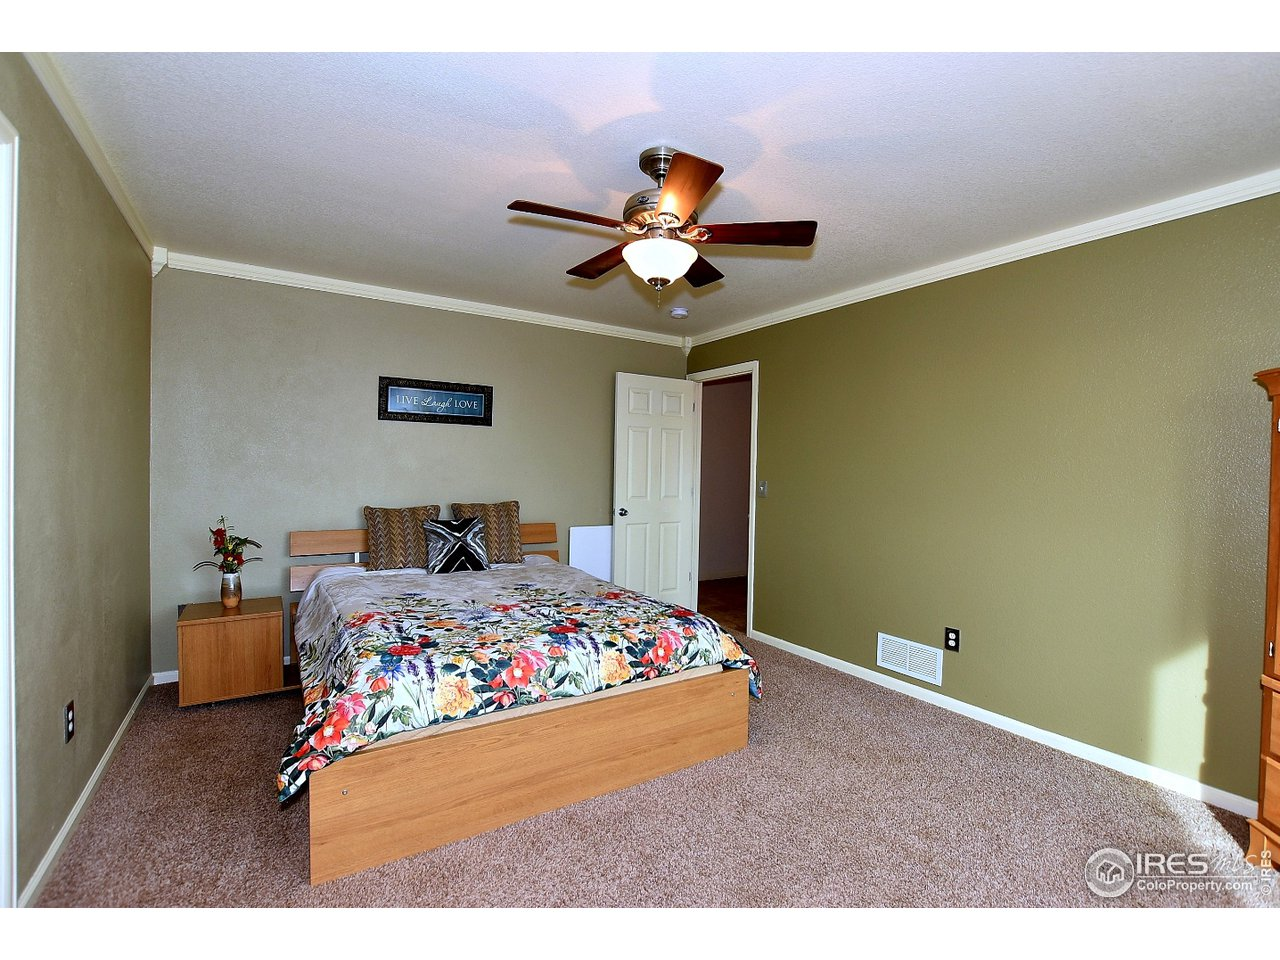 Tucked away, your master suite!